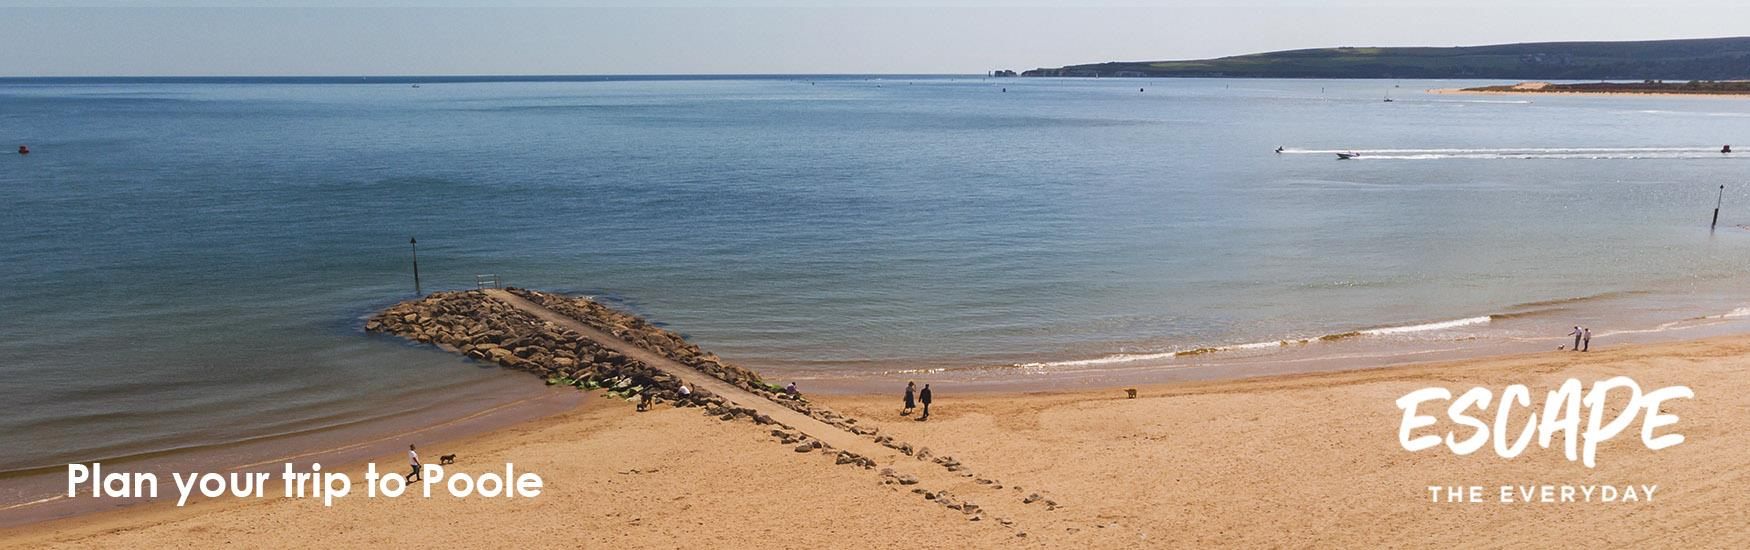 Visitors enjoying an autumn walk along one of Pooles beautiful beaches with a logo overlay that reads Escape the Everyday